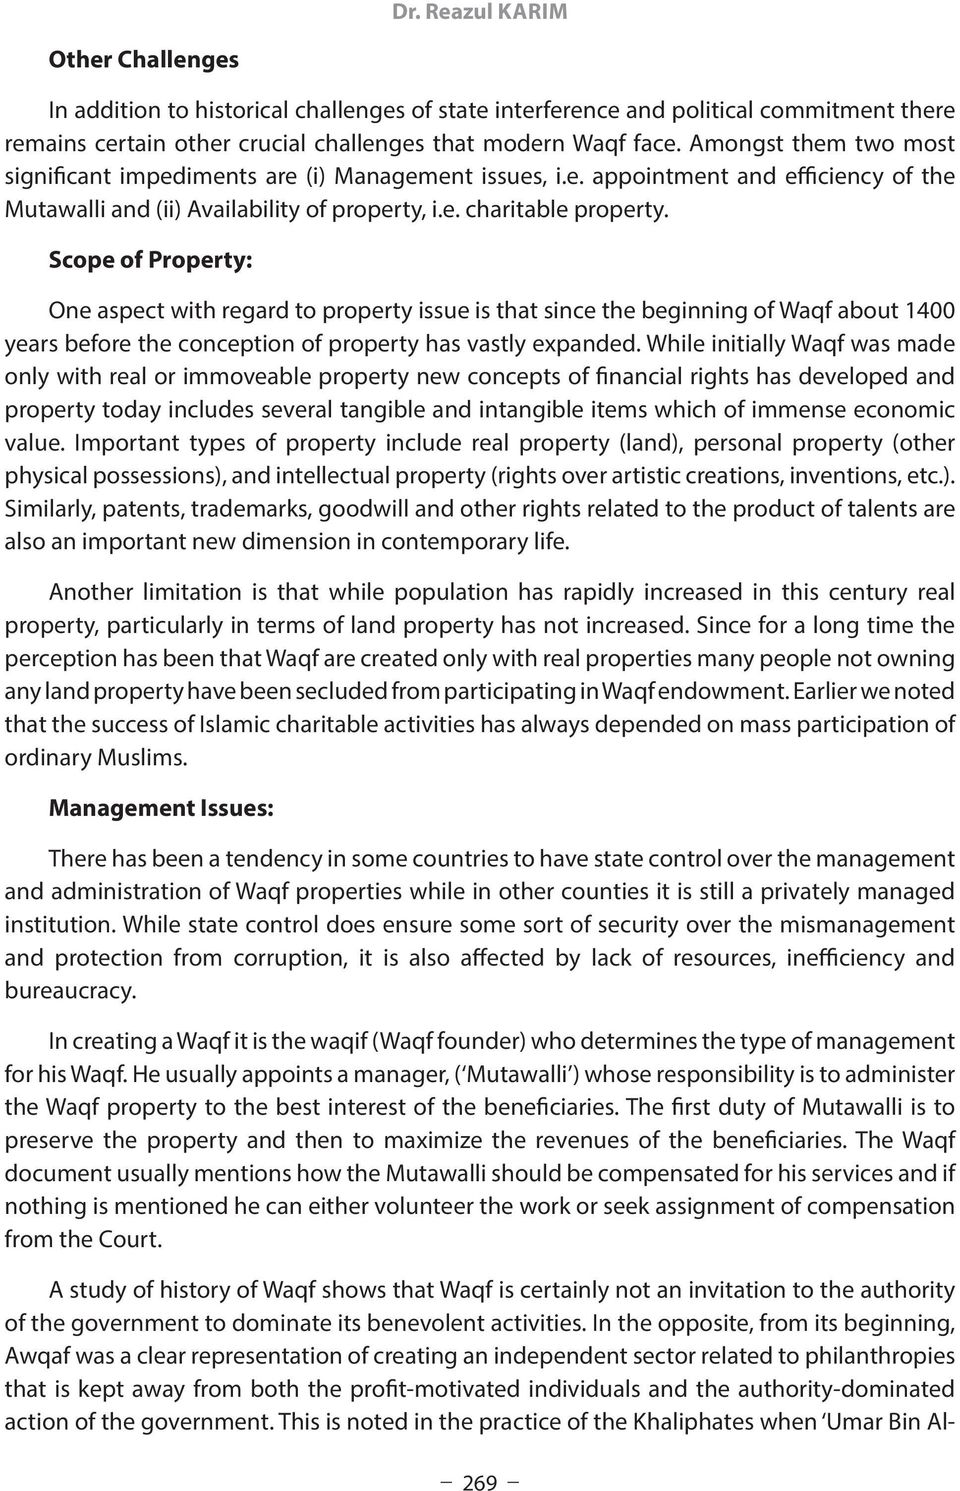 Scope of Property: One aspect with regard to property issue is that since the beginning of Waqf about 1400 years before the conception of property has vastly expanded.